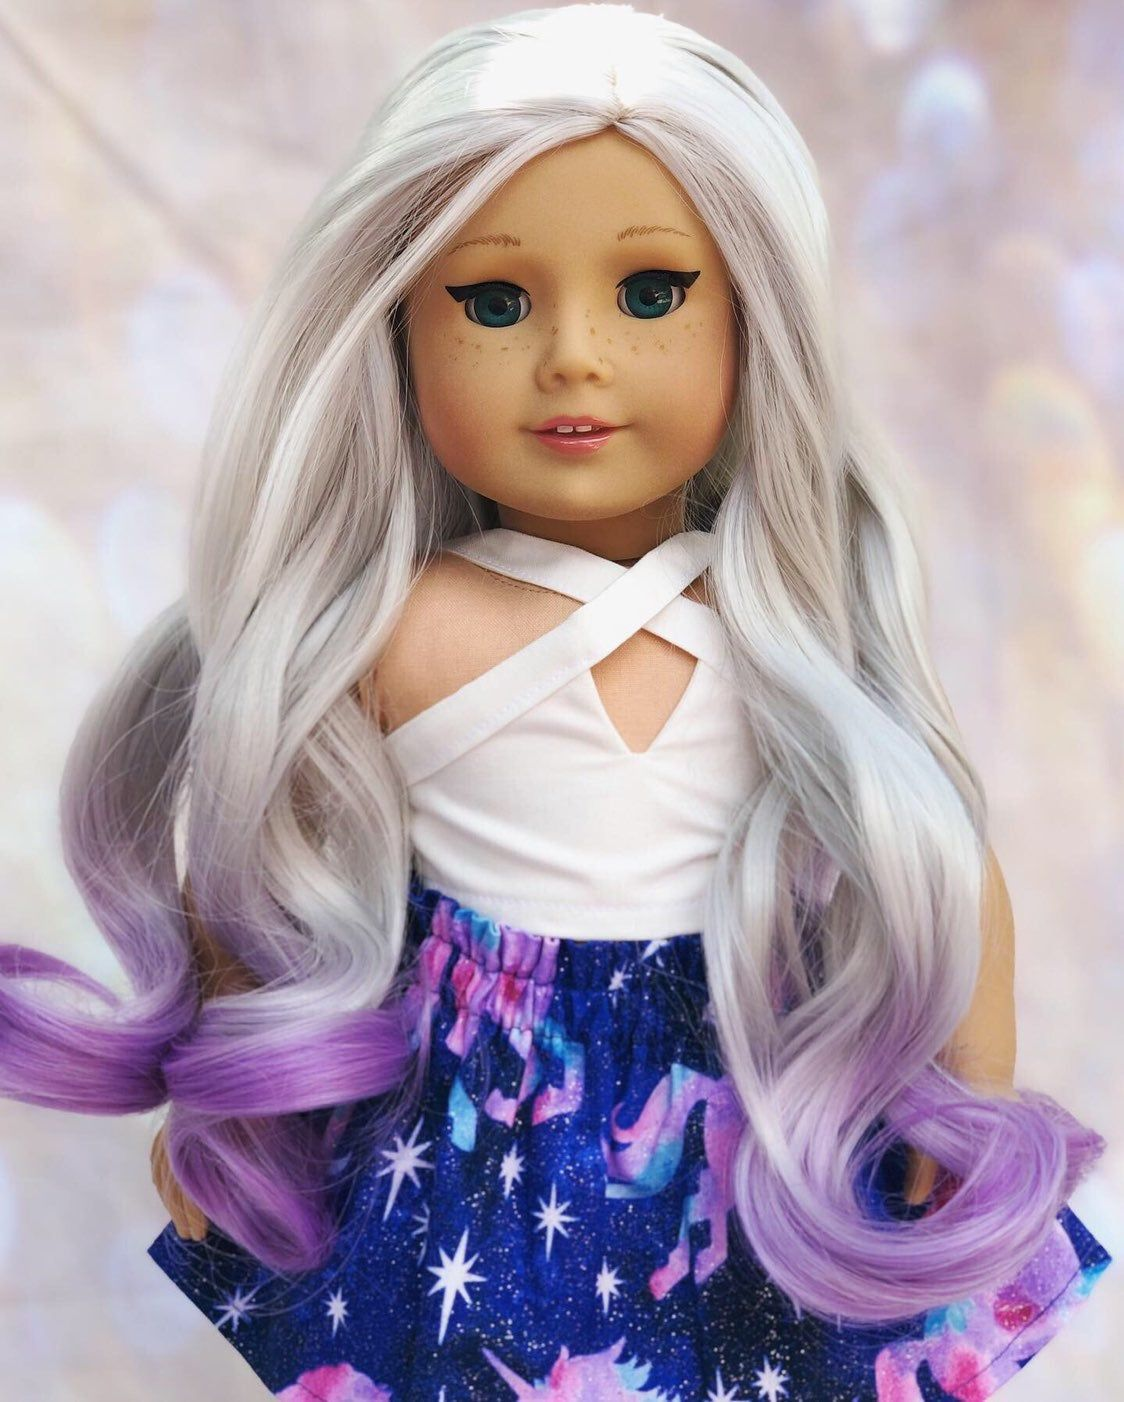 This custom doll was made from an American girl of the